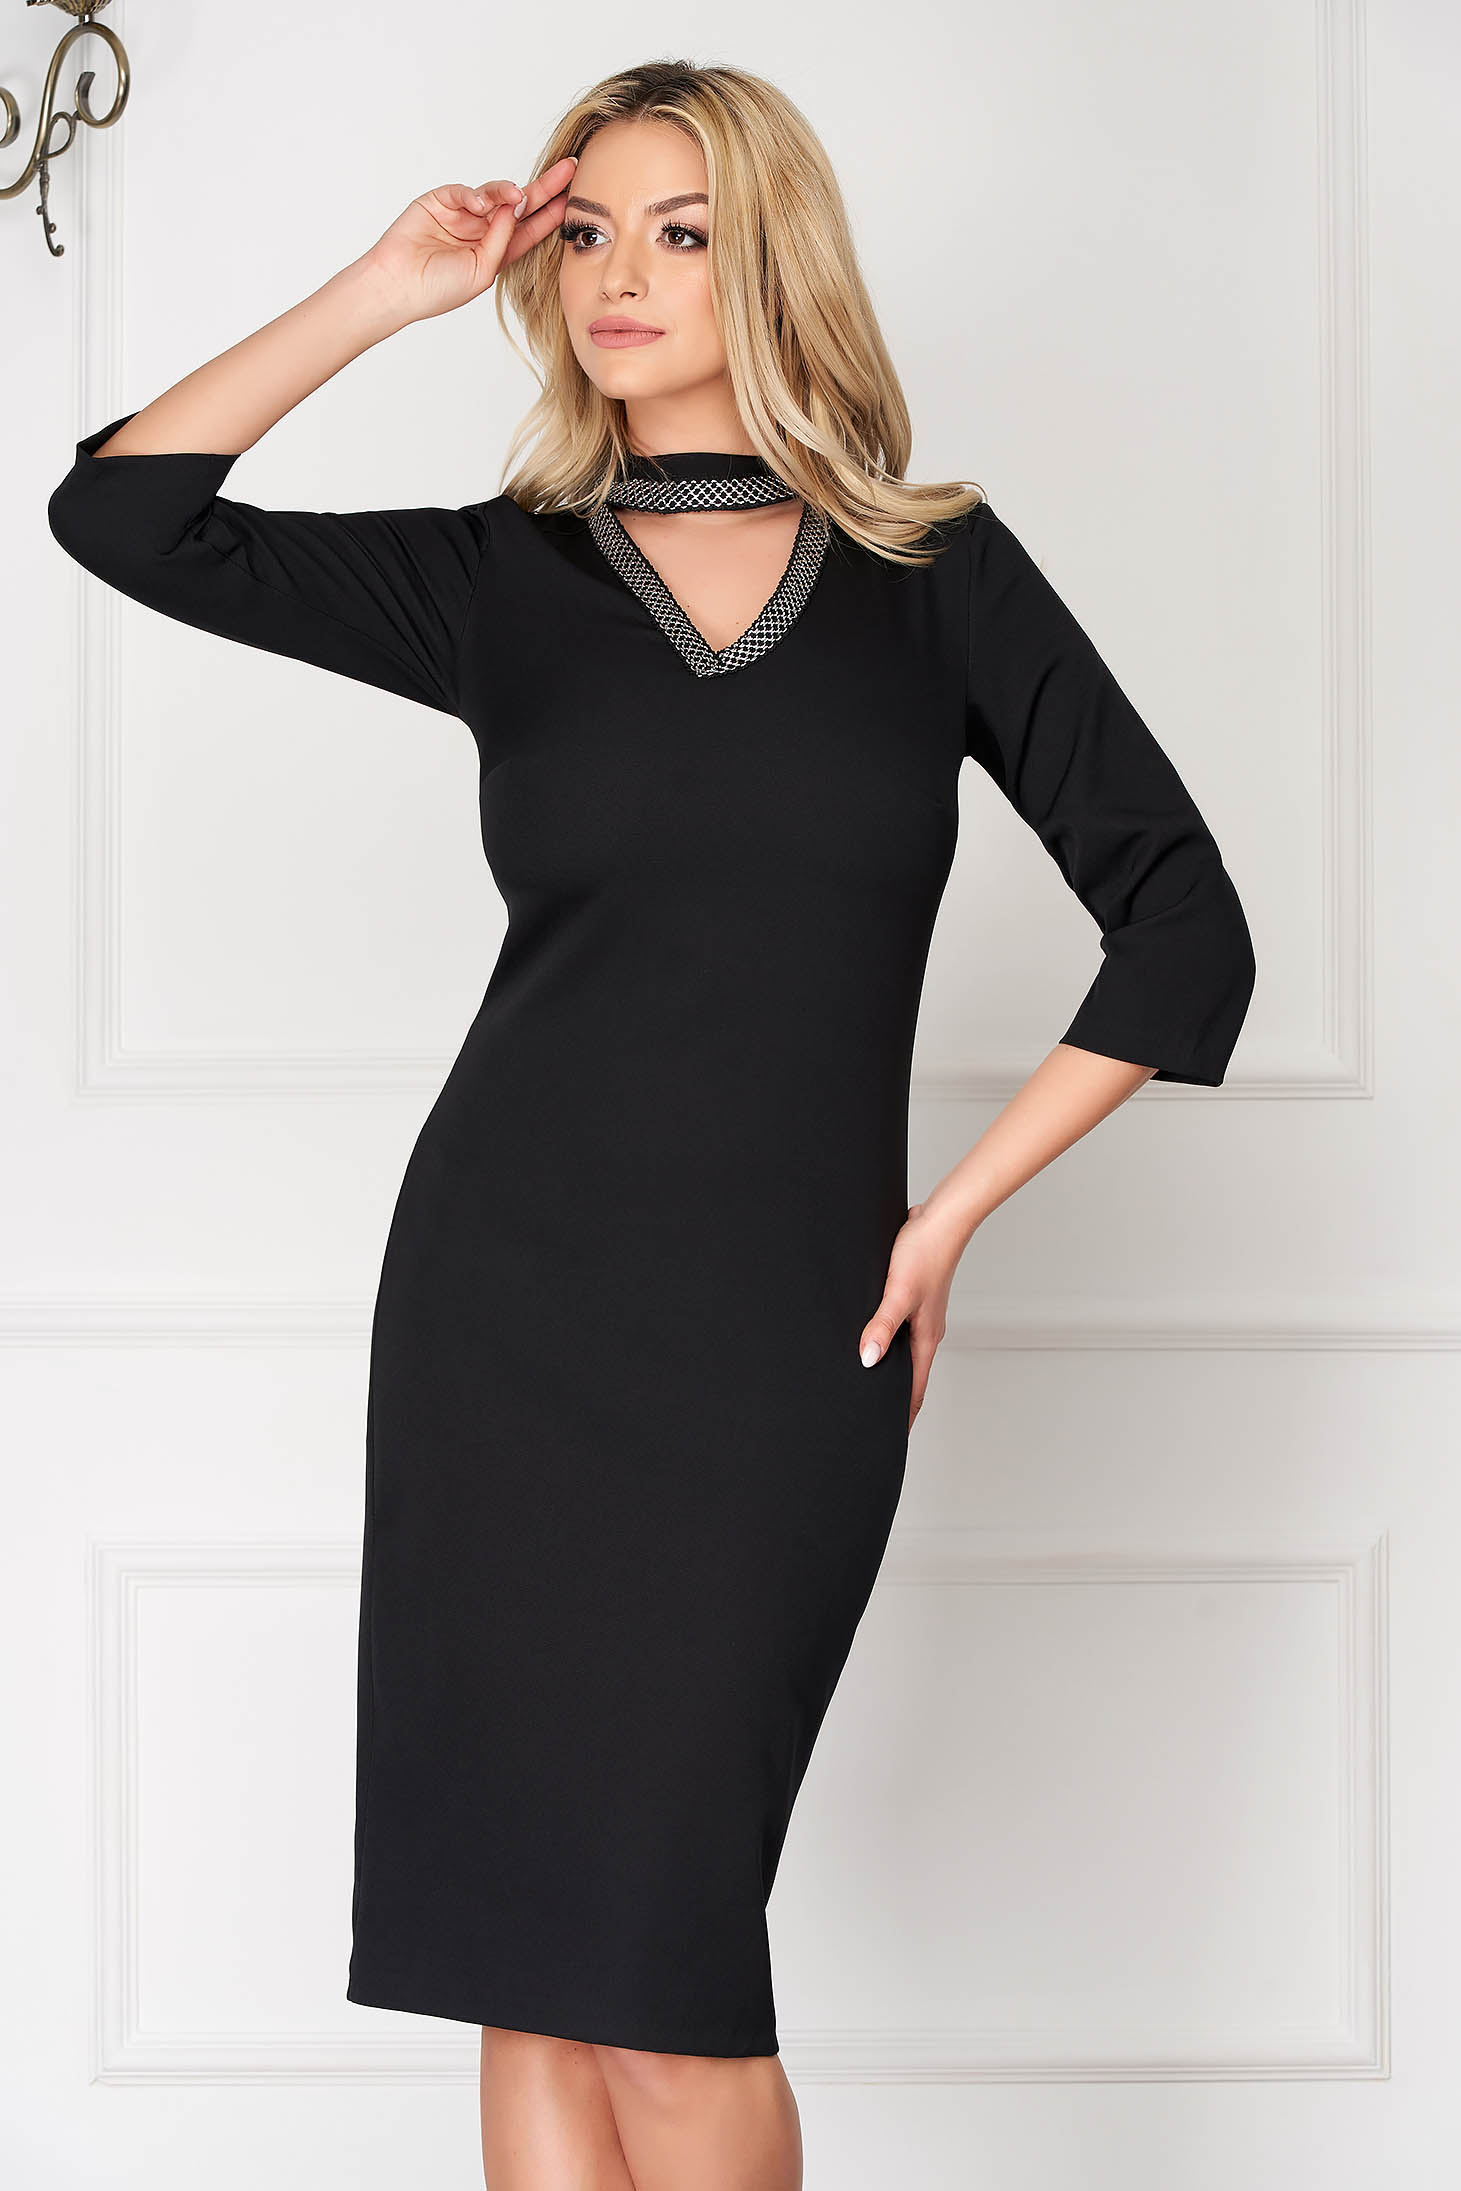 Black elegant midi pencil dress cut-out bust design with 3/4 sleeves